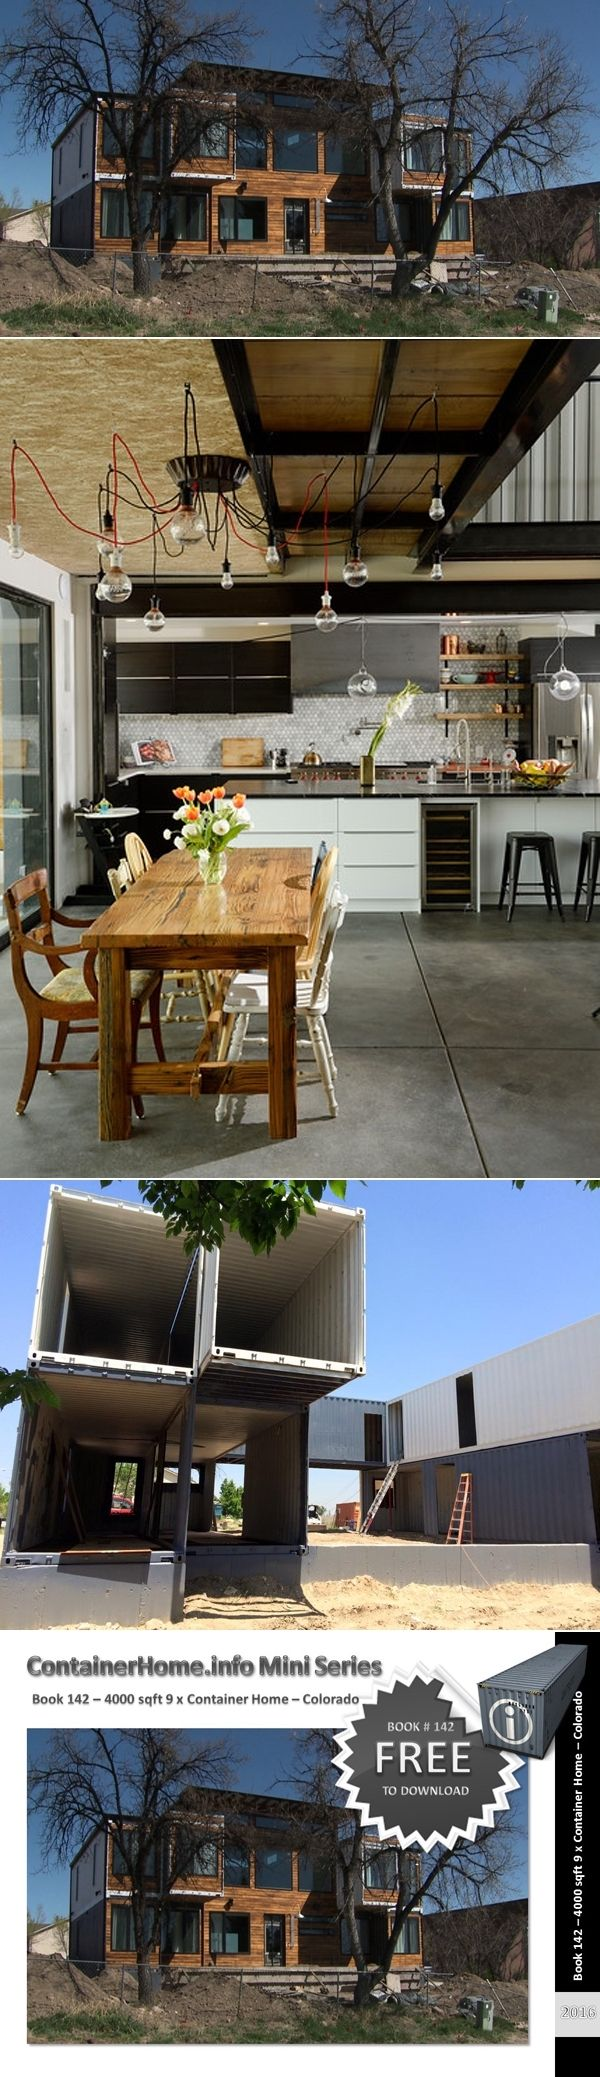 Best 25 cargo container homes ideas on pinterest Build your own container home